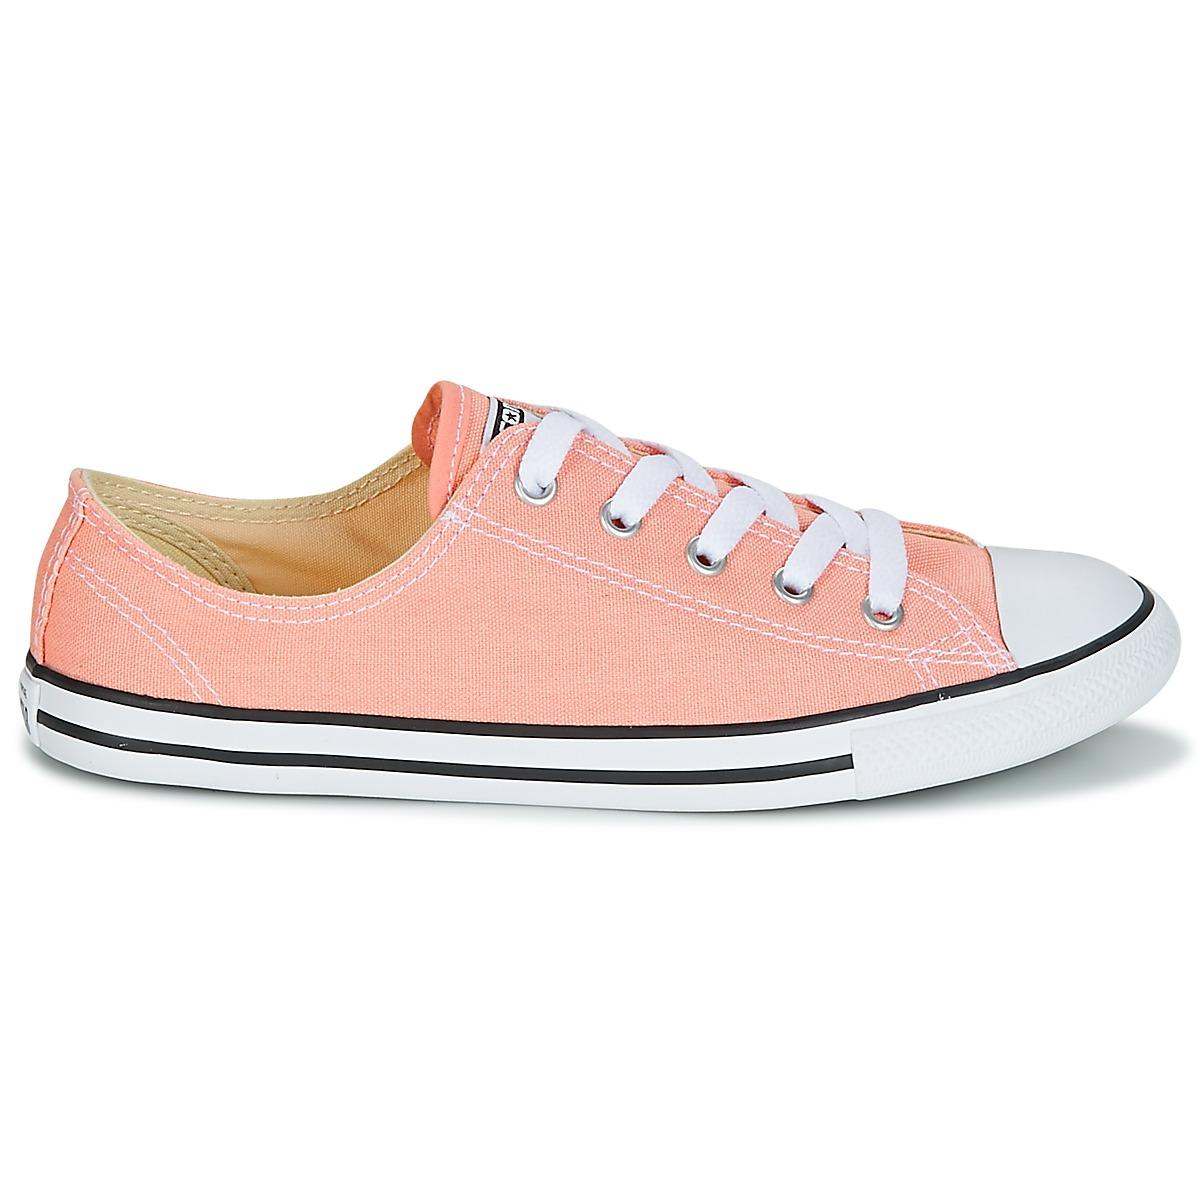 Converse - Chuck Taylor All Star Dainty Ox Canvas Color Women s Shoes ( trainers) In. View fullscreen 7a44154cd